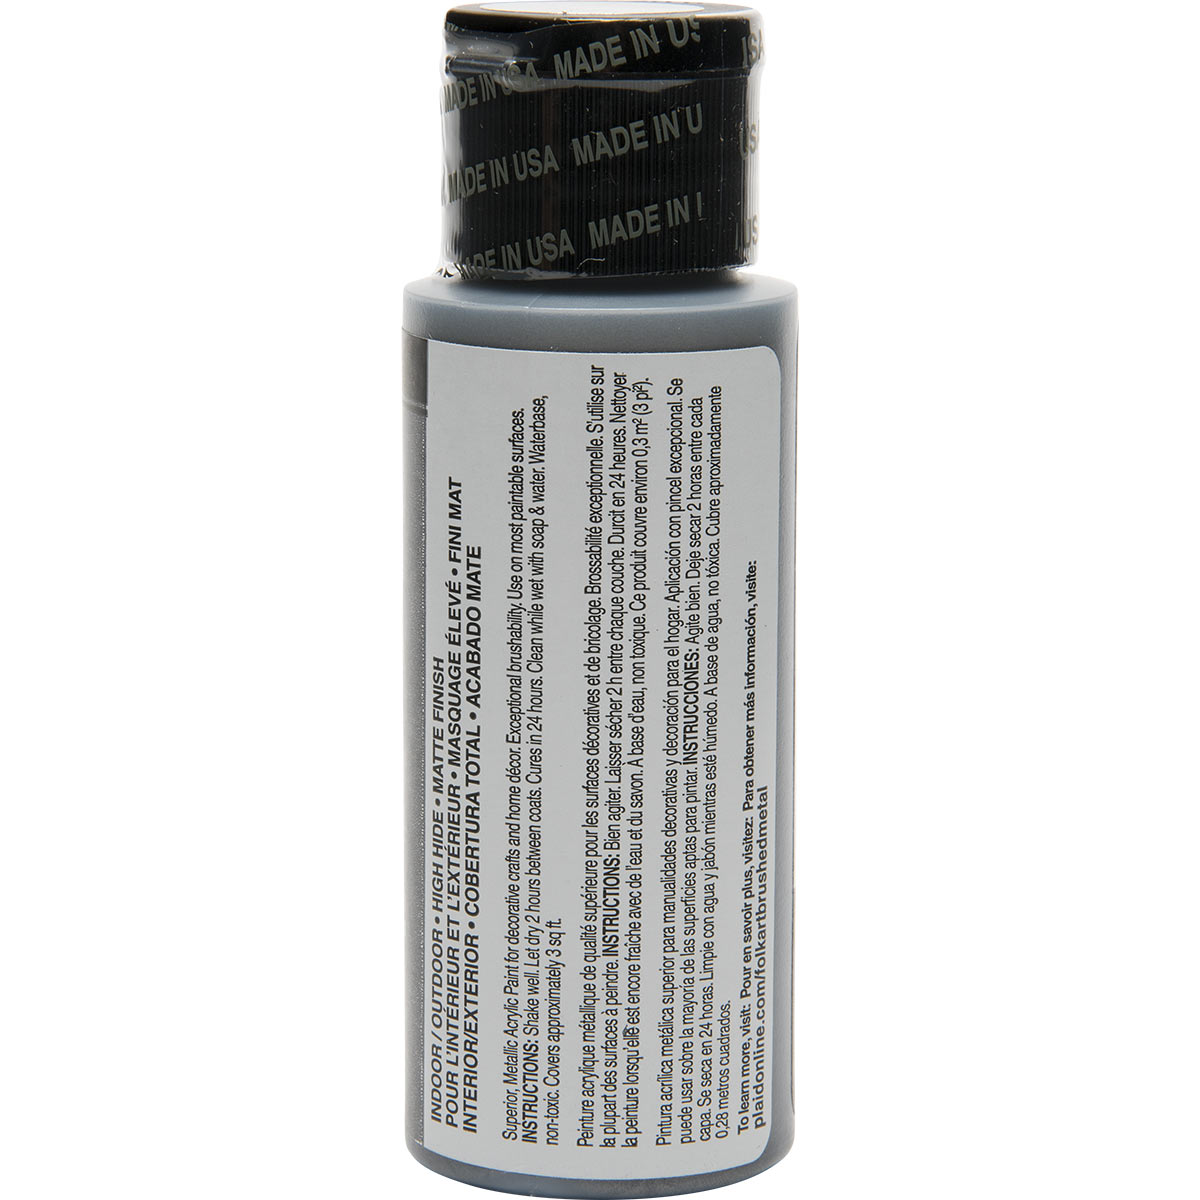 FolkArt ® Brushed Metal™ Acrylic Paint - Dark Gray, 2 oz. - 5167